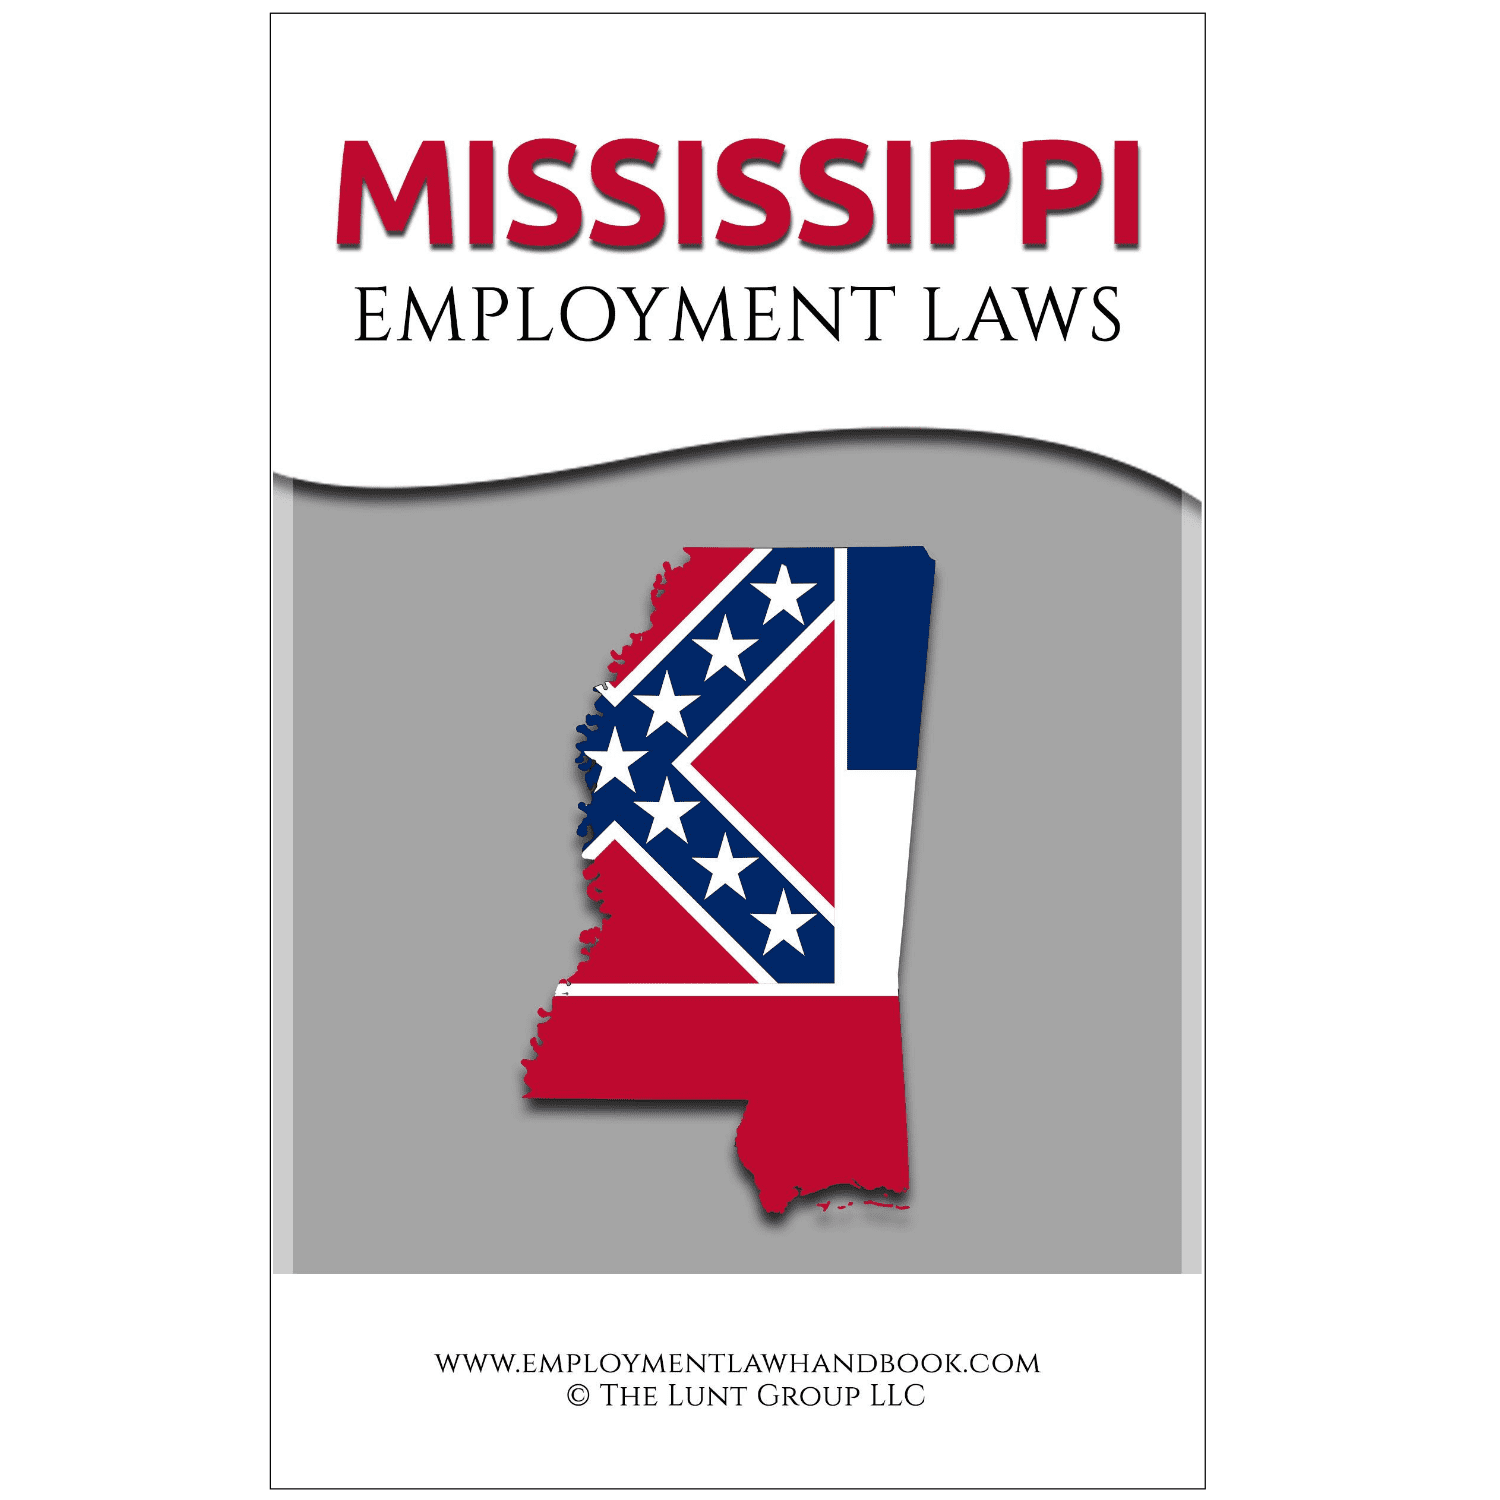 Mississippi Employment Laws_sq